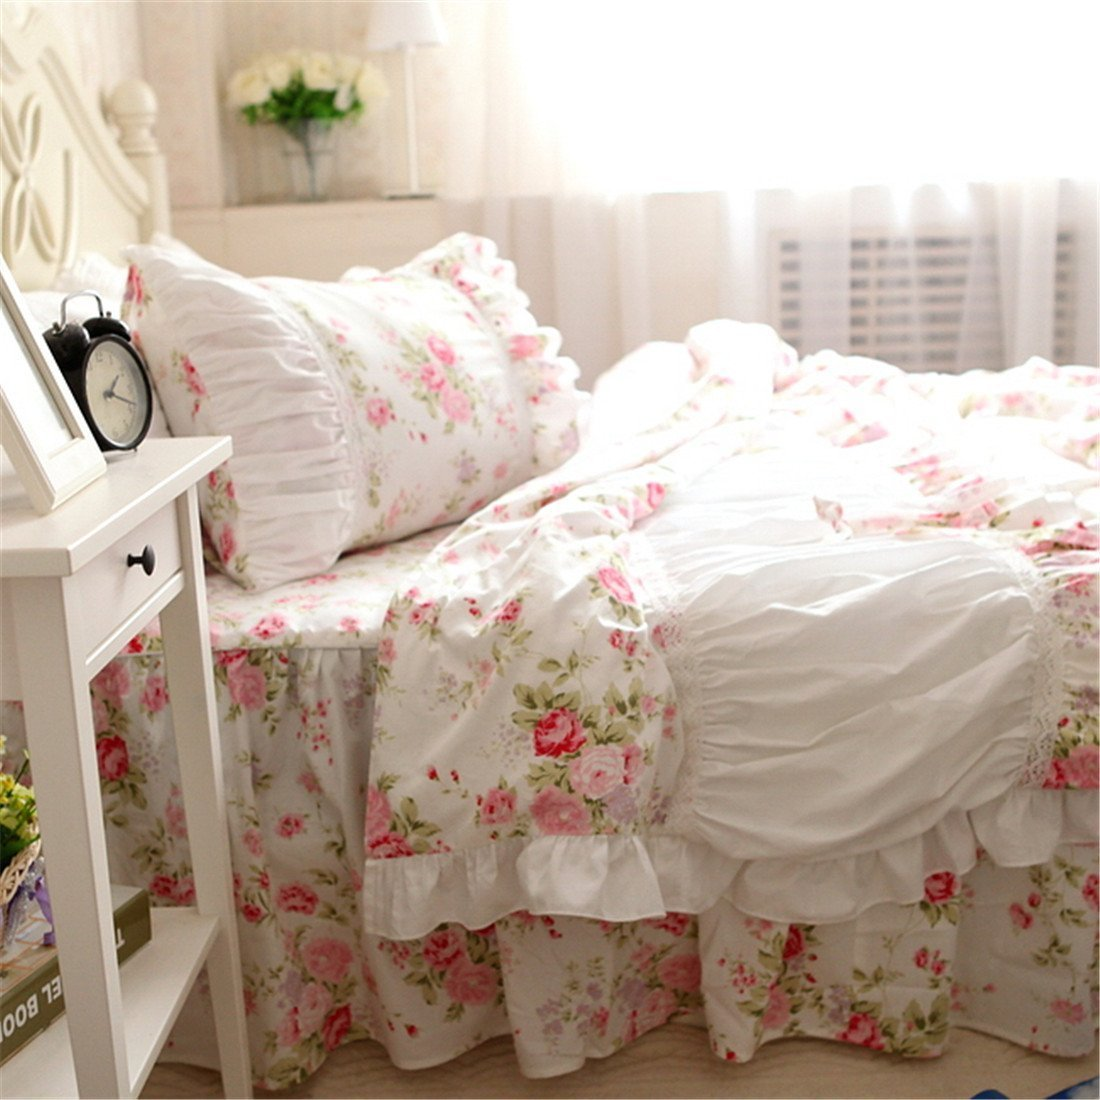 FADFAY Cotton Bedding,Shabby Pink Rose Floral Print Bedding Set,Elegant Country Style Vintage Ruffles Duvet Cover Bed Sets with Lace Queen Size